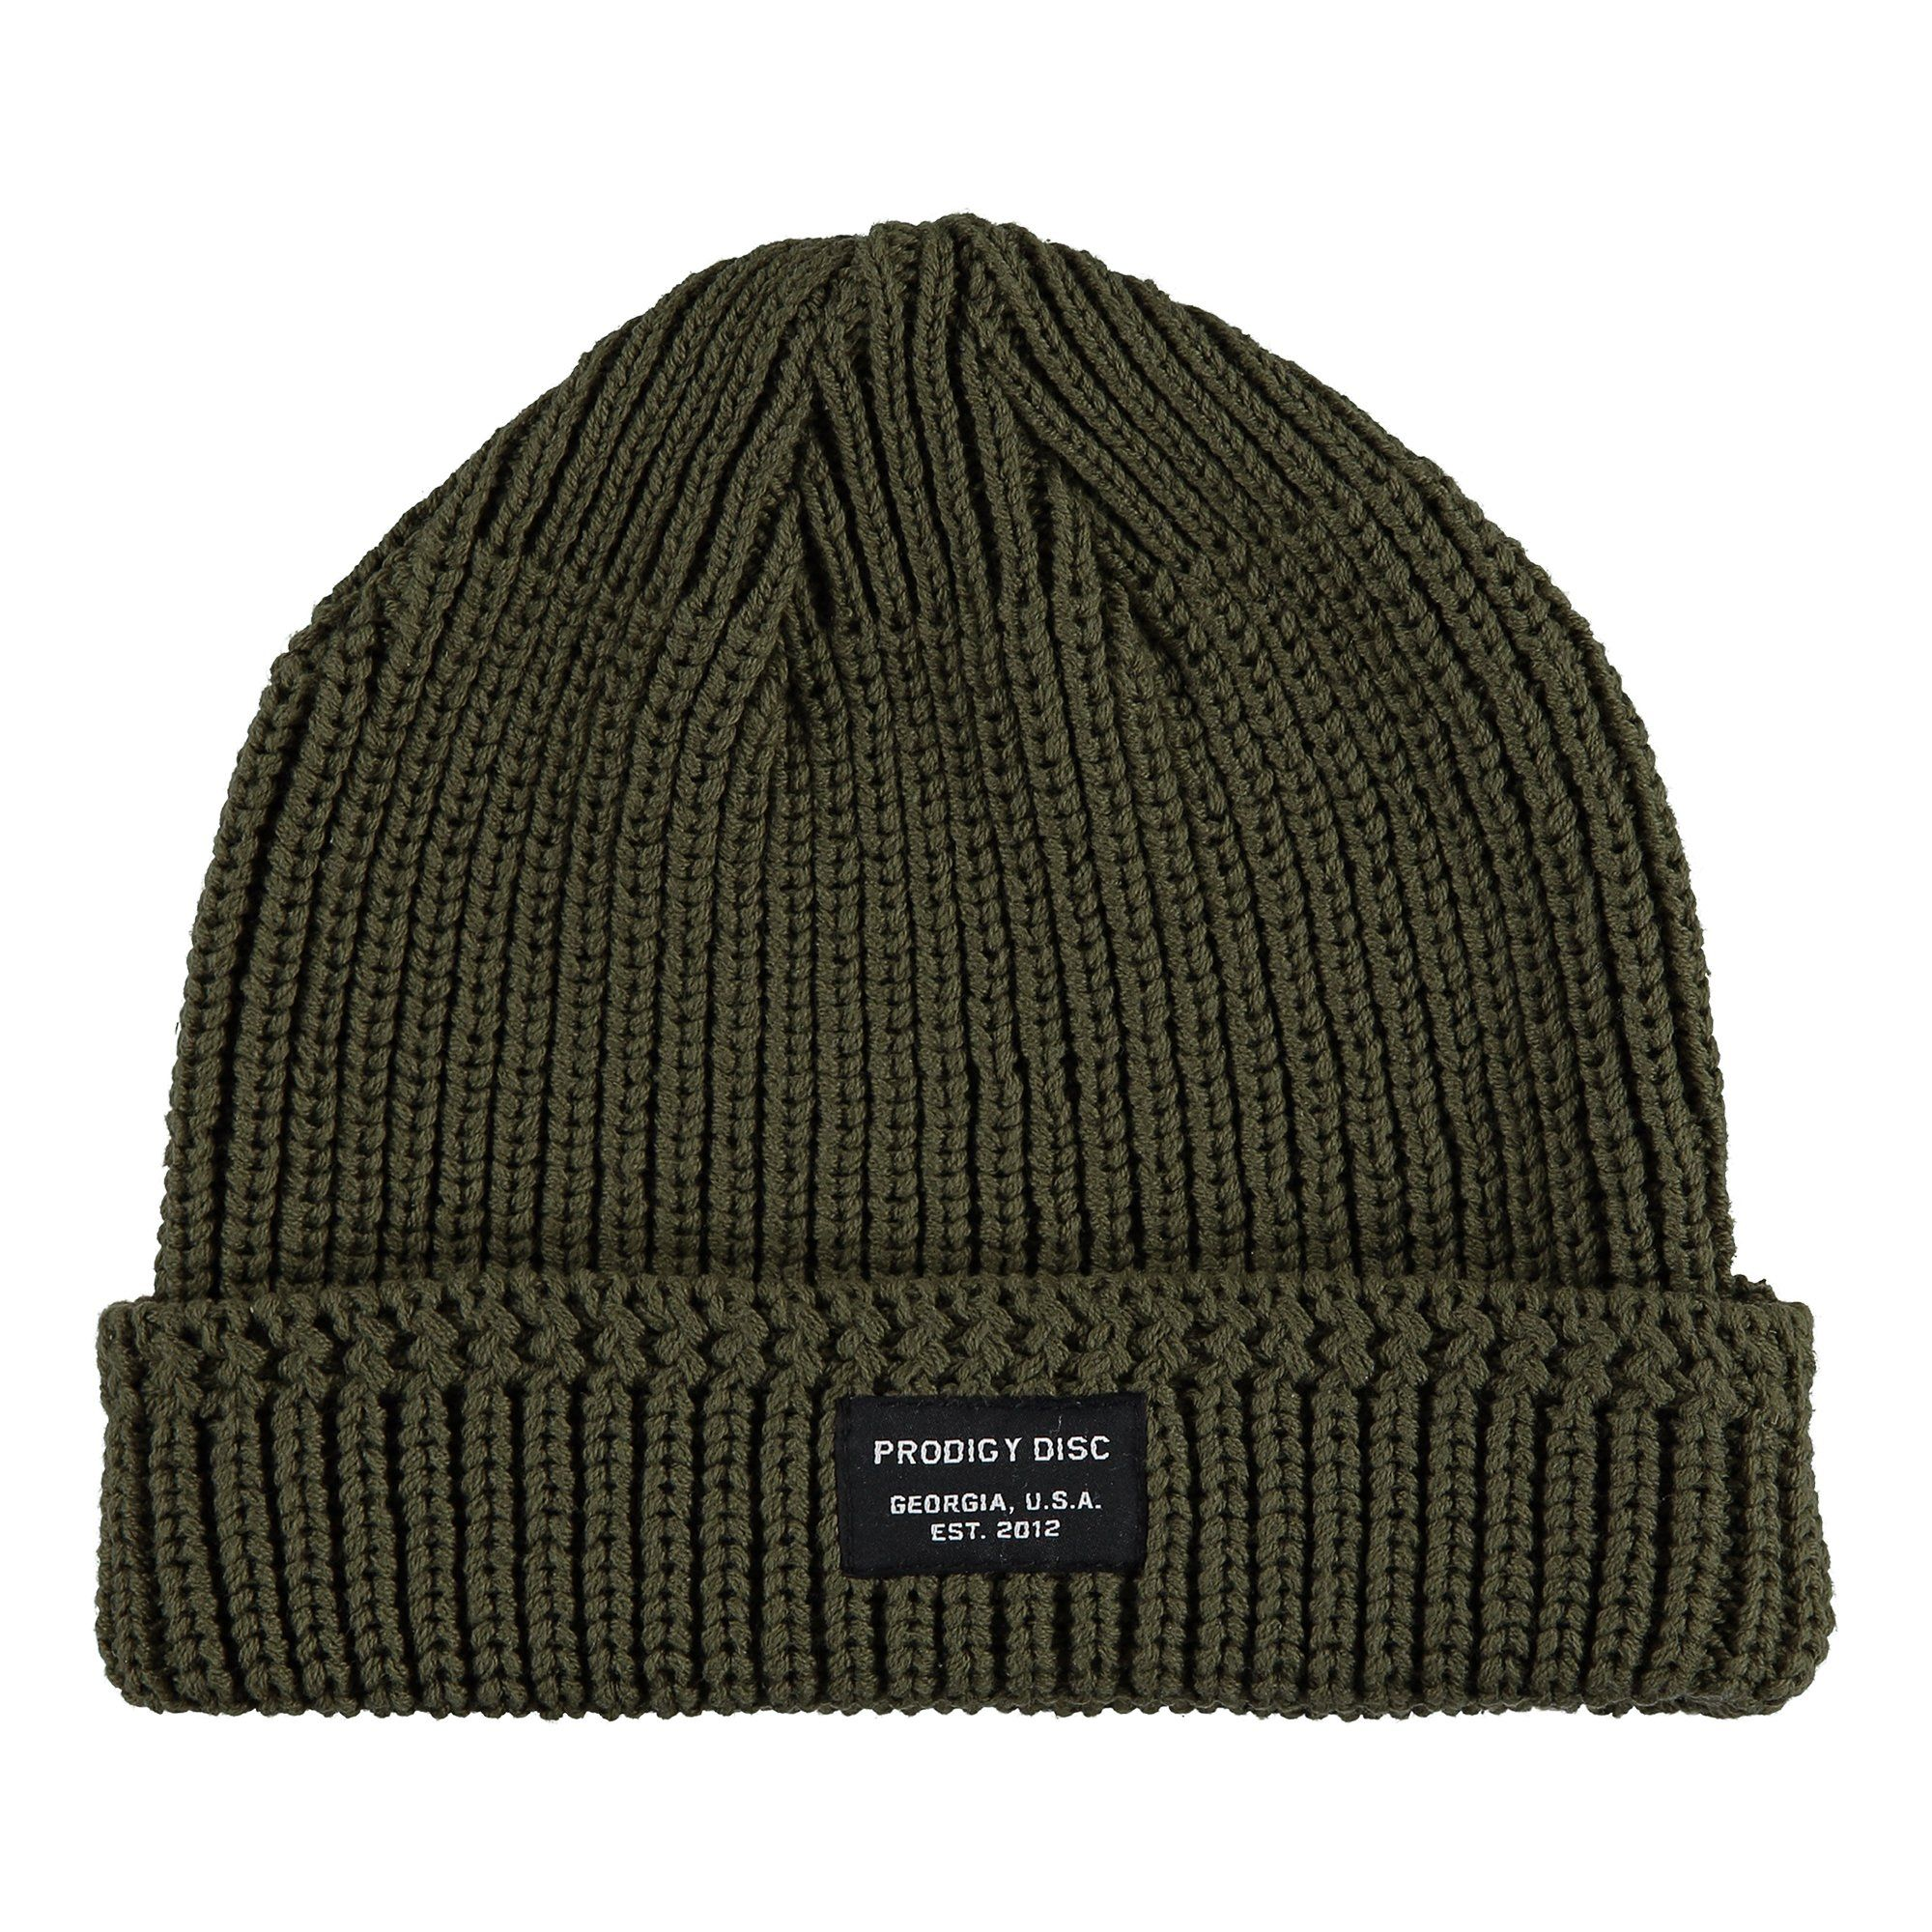 0f117b36056 The Prodigy Origin Knit Beanie is a vintage style rib-knit hat with a  Prodigy